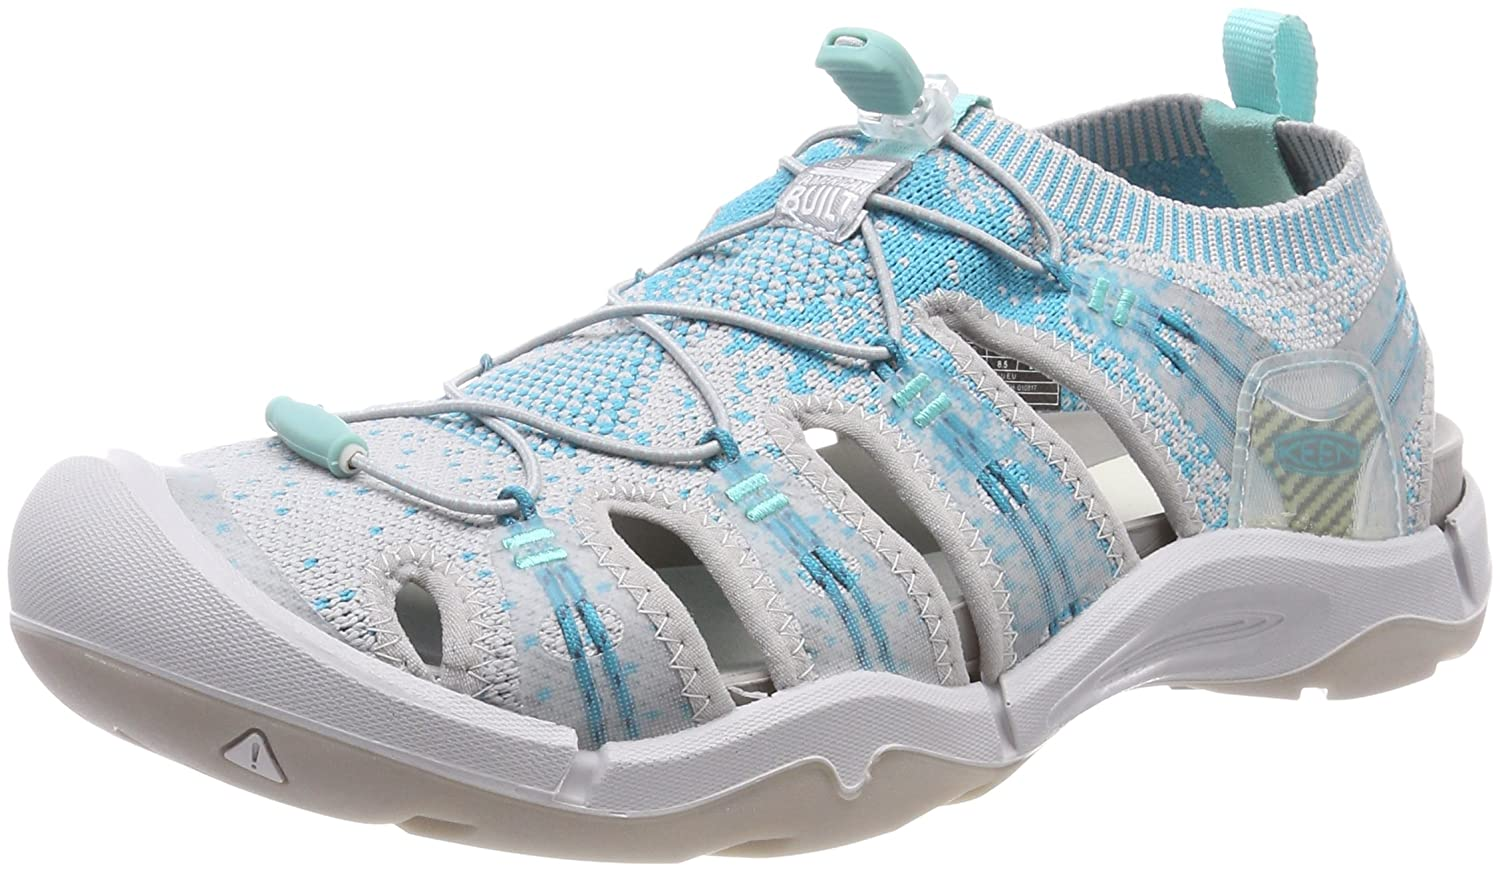 KEEN Women's EVOFIT ONE Water Sandal for Outdoor Adventures B06ZY6R6QL 7 M US|Paloma/Lake Blue